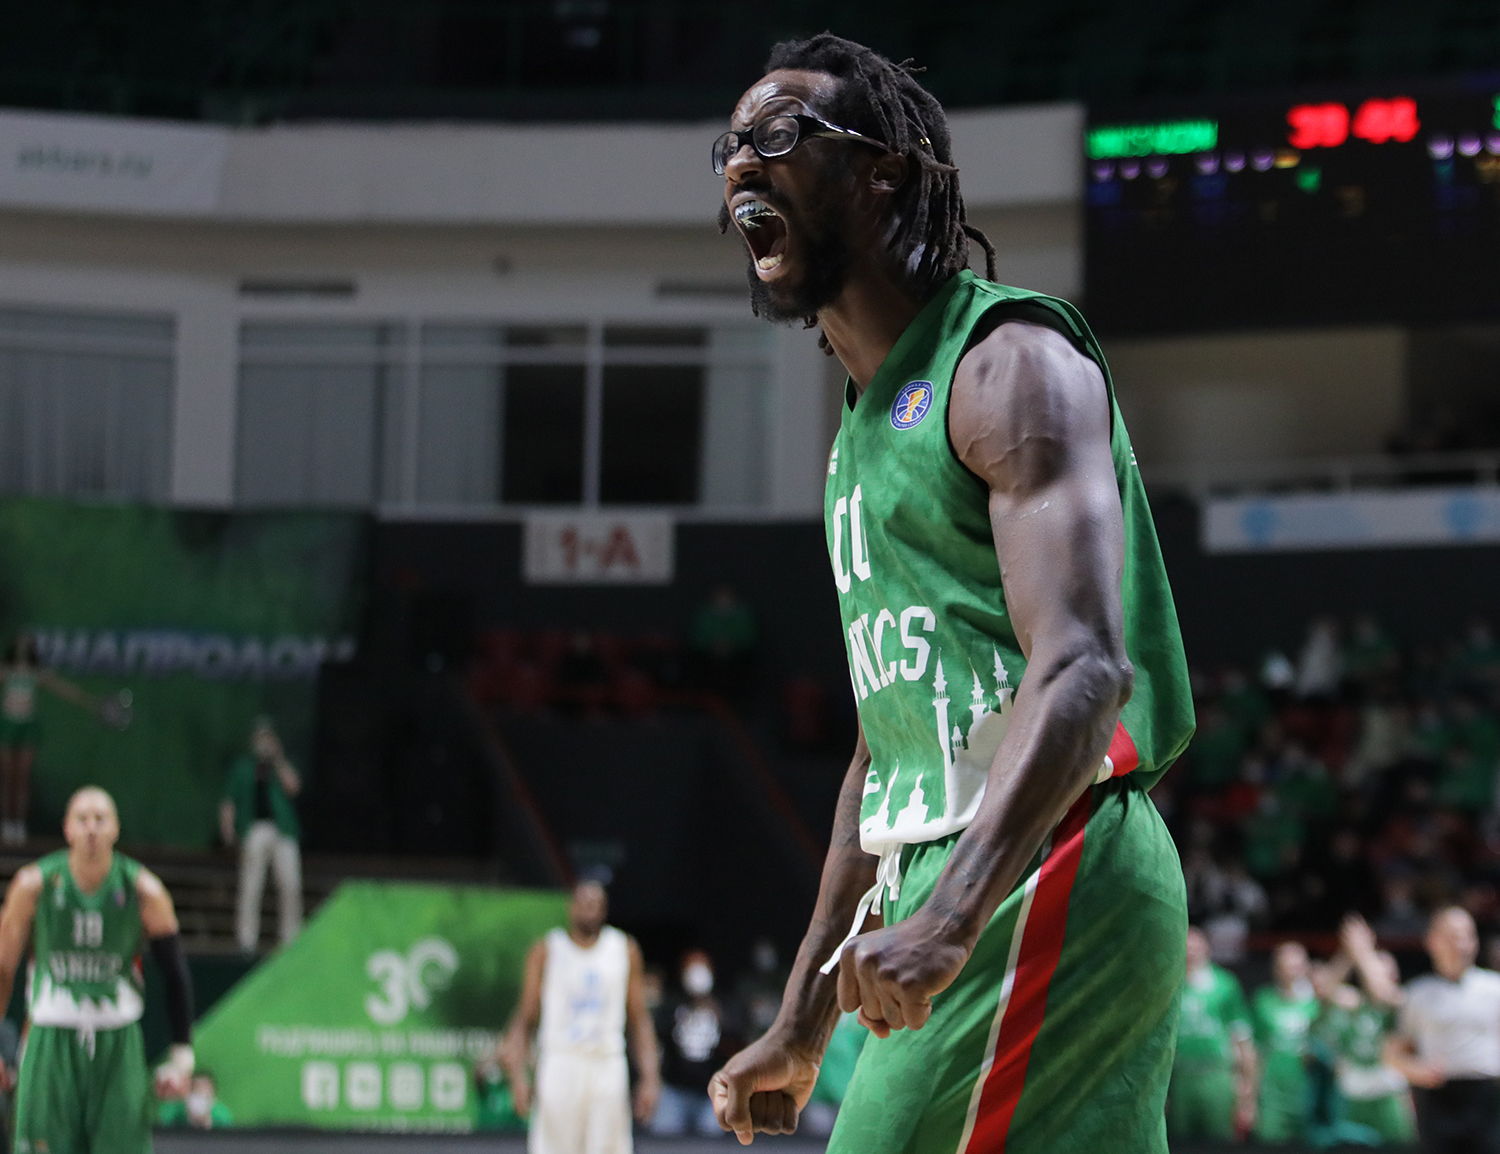 Historic wins, cosmic UNICS, All-Star. What's winter 2020/21 memorable for